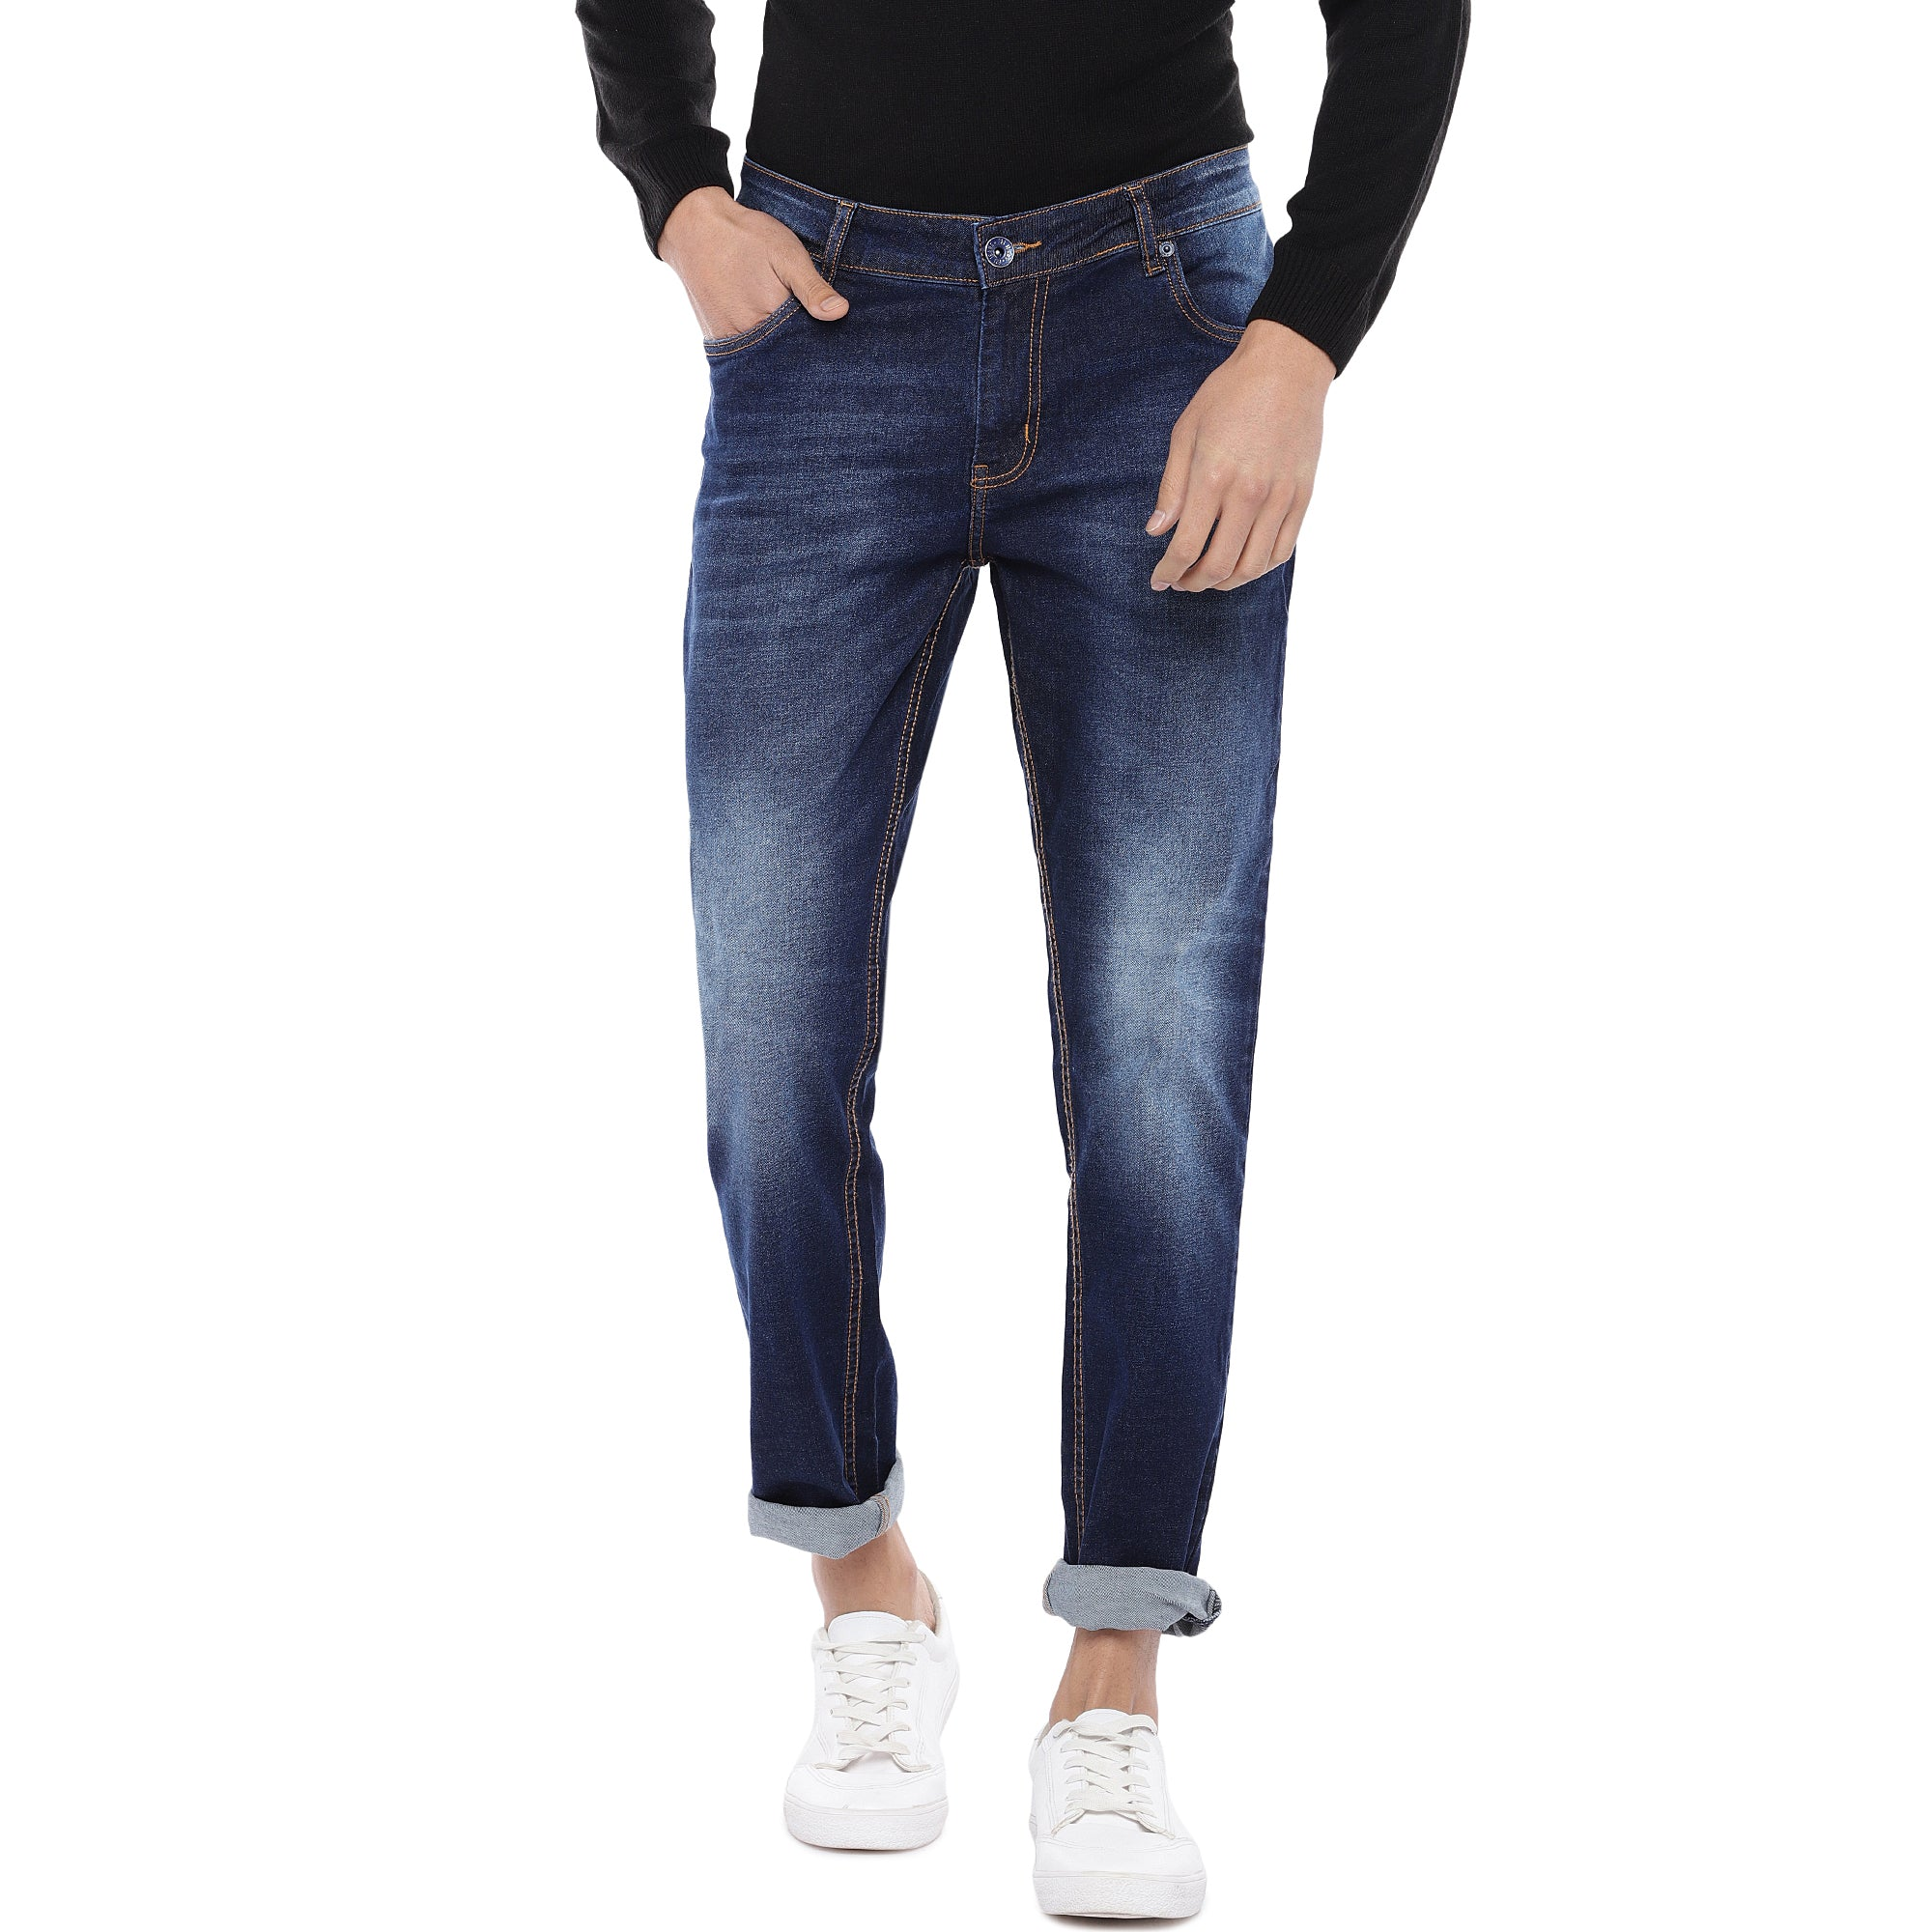 Blue Slim Fit Mid Rise Clean Look Jeans-1